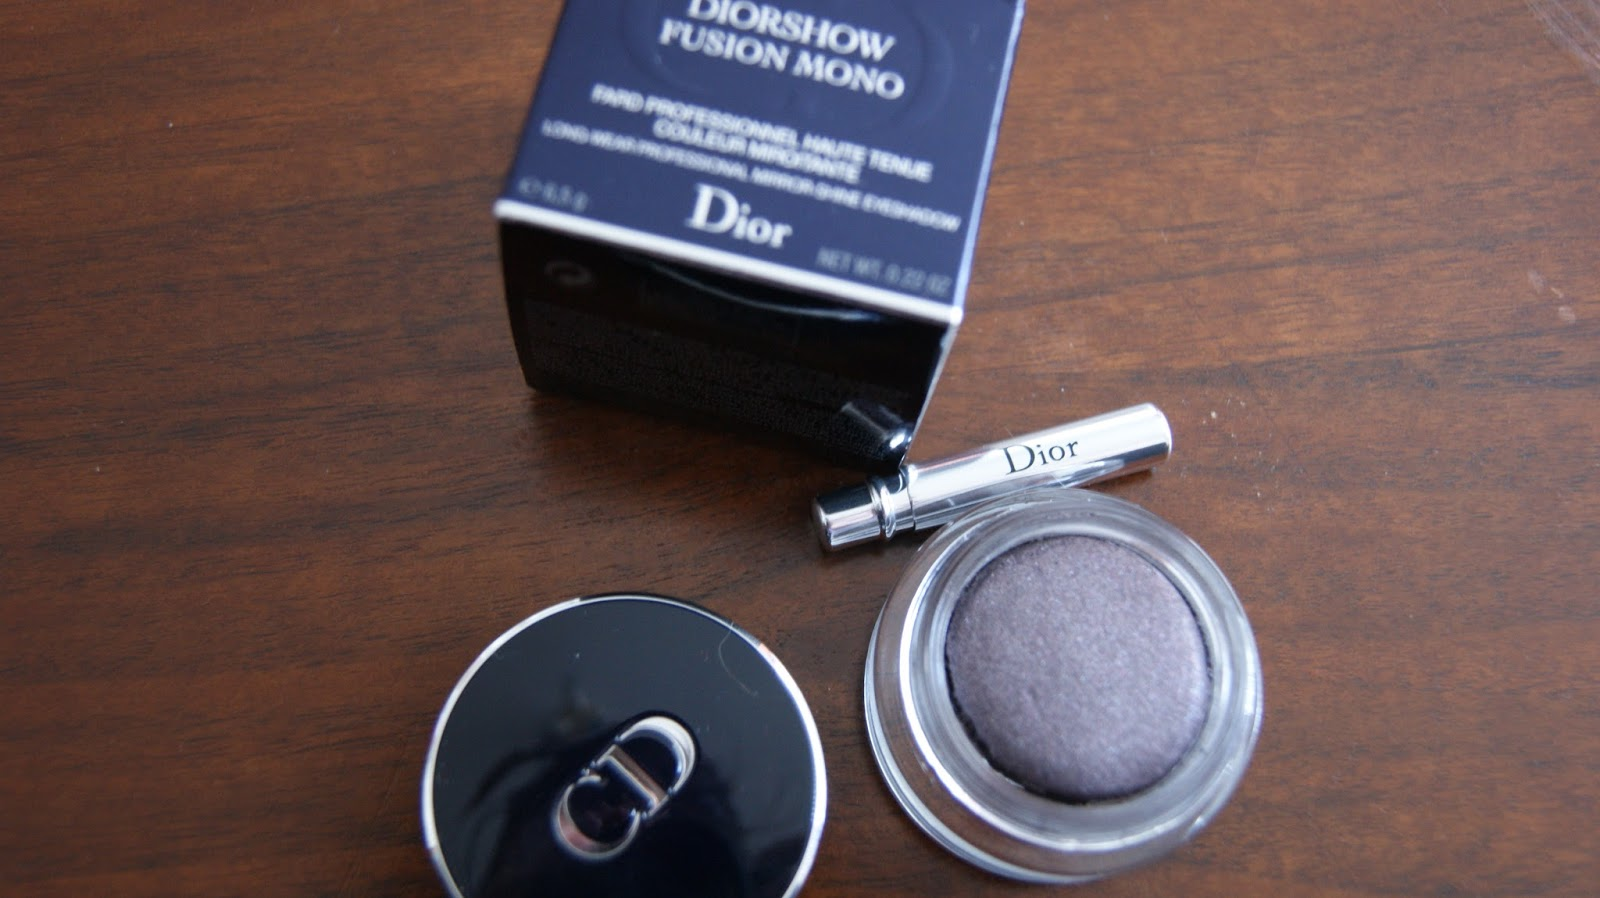 Dior Diorshow Fusion Mono Eyeshadow In Hypnotique